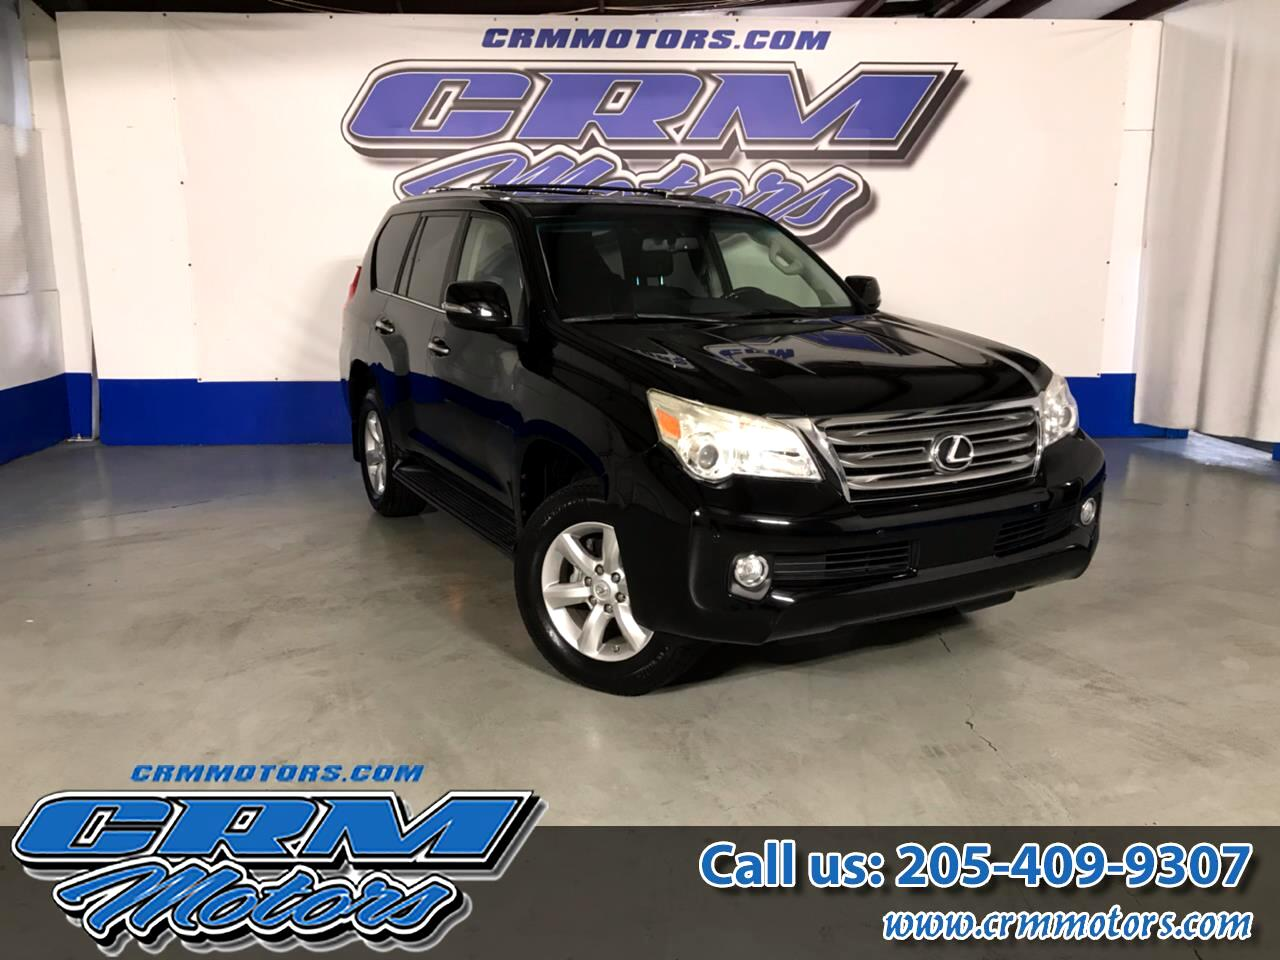 2010 Lexus GX 460 4WD LUXURY FULLY LOADED! LIKE NEW AND LOW MILES!